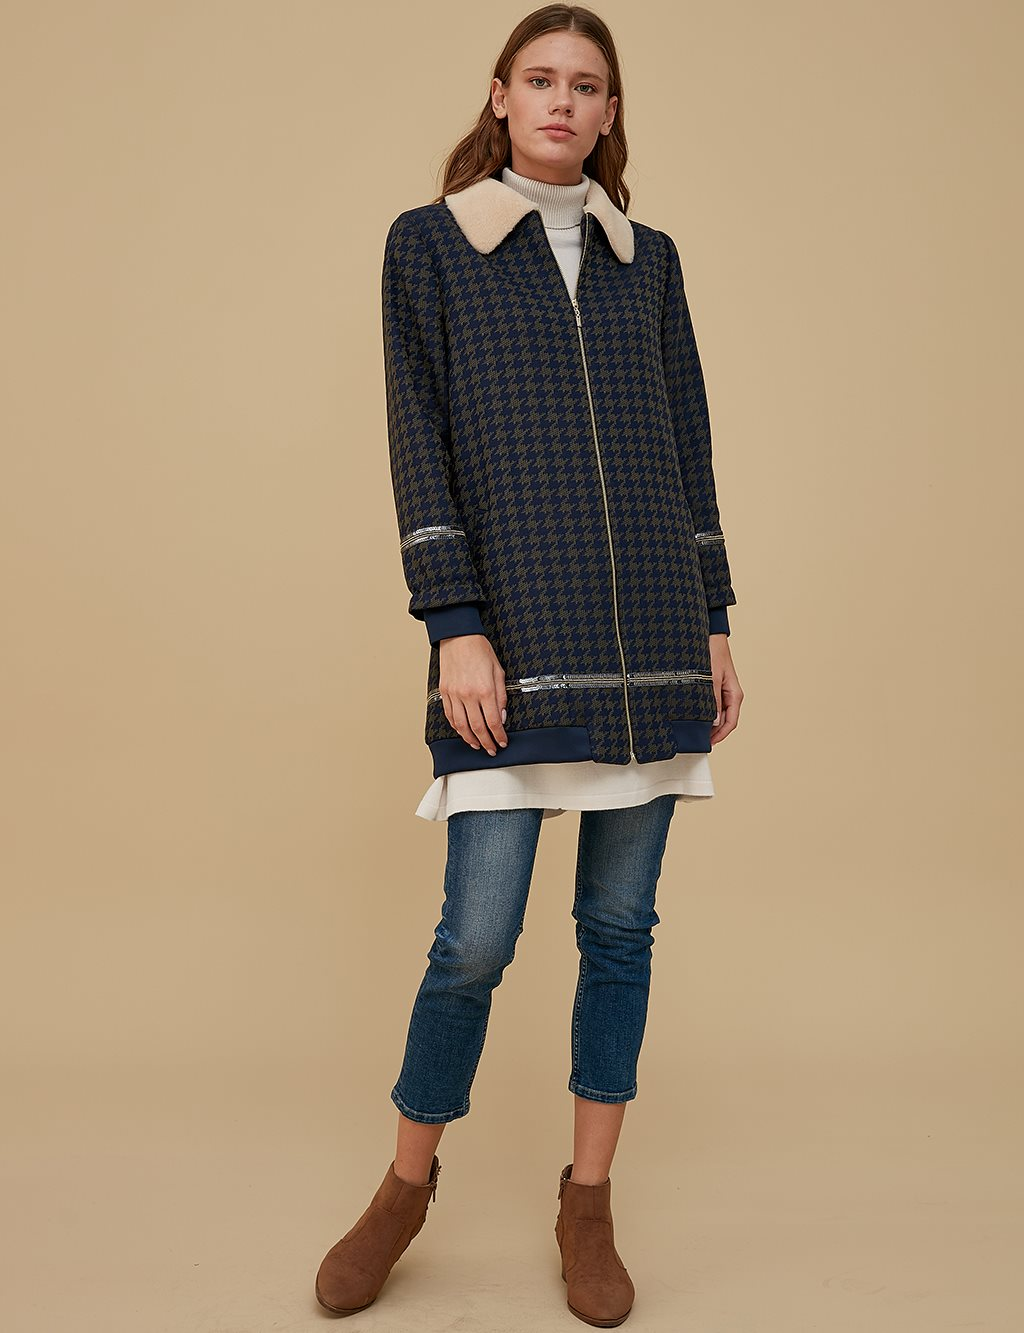 KYR Patterned Jacket A9 73012 Navy